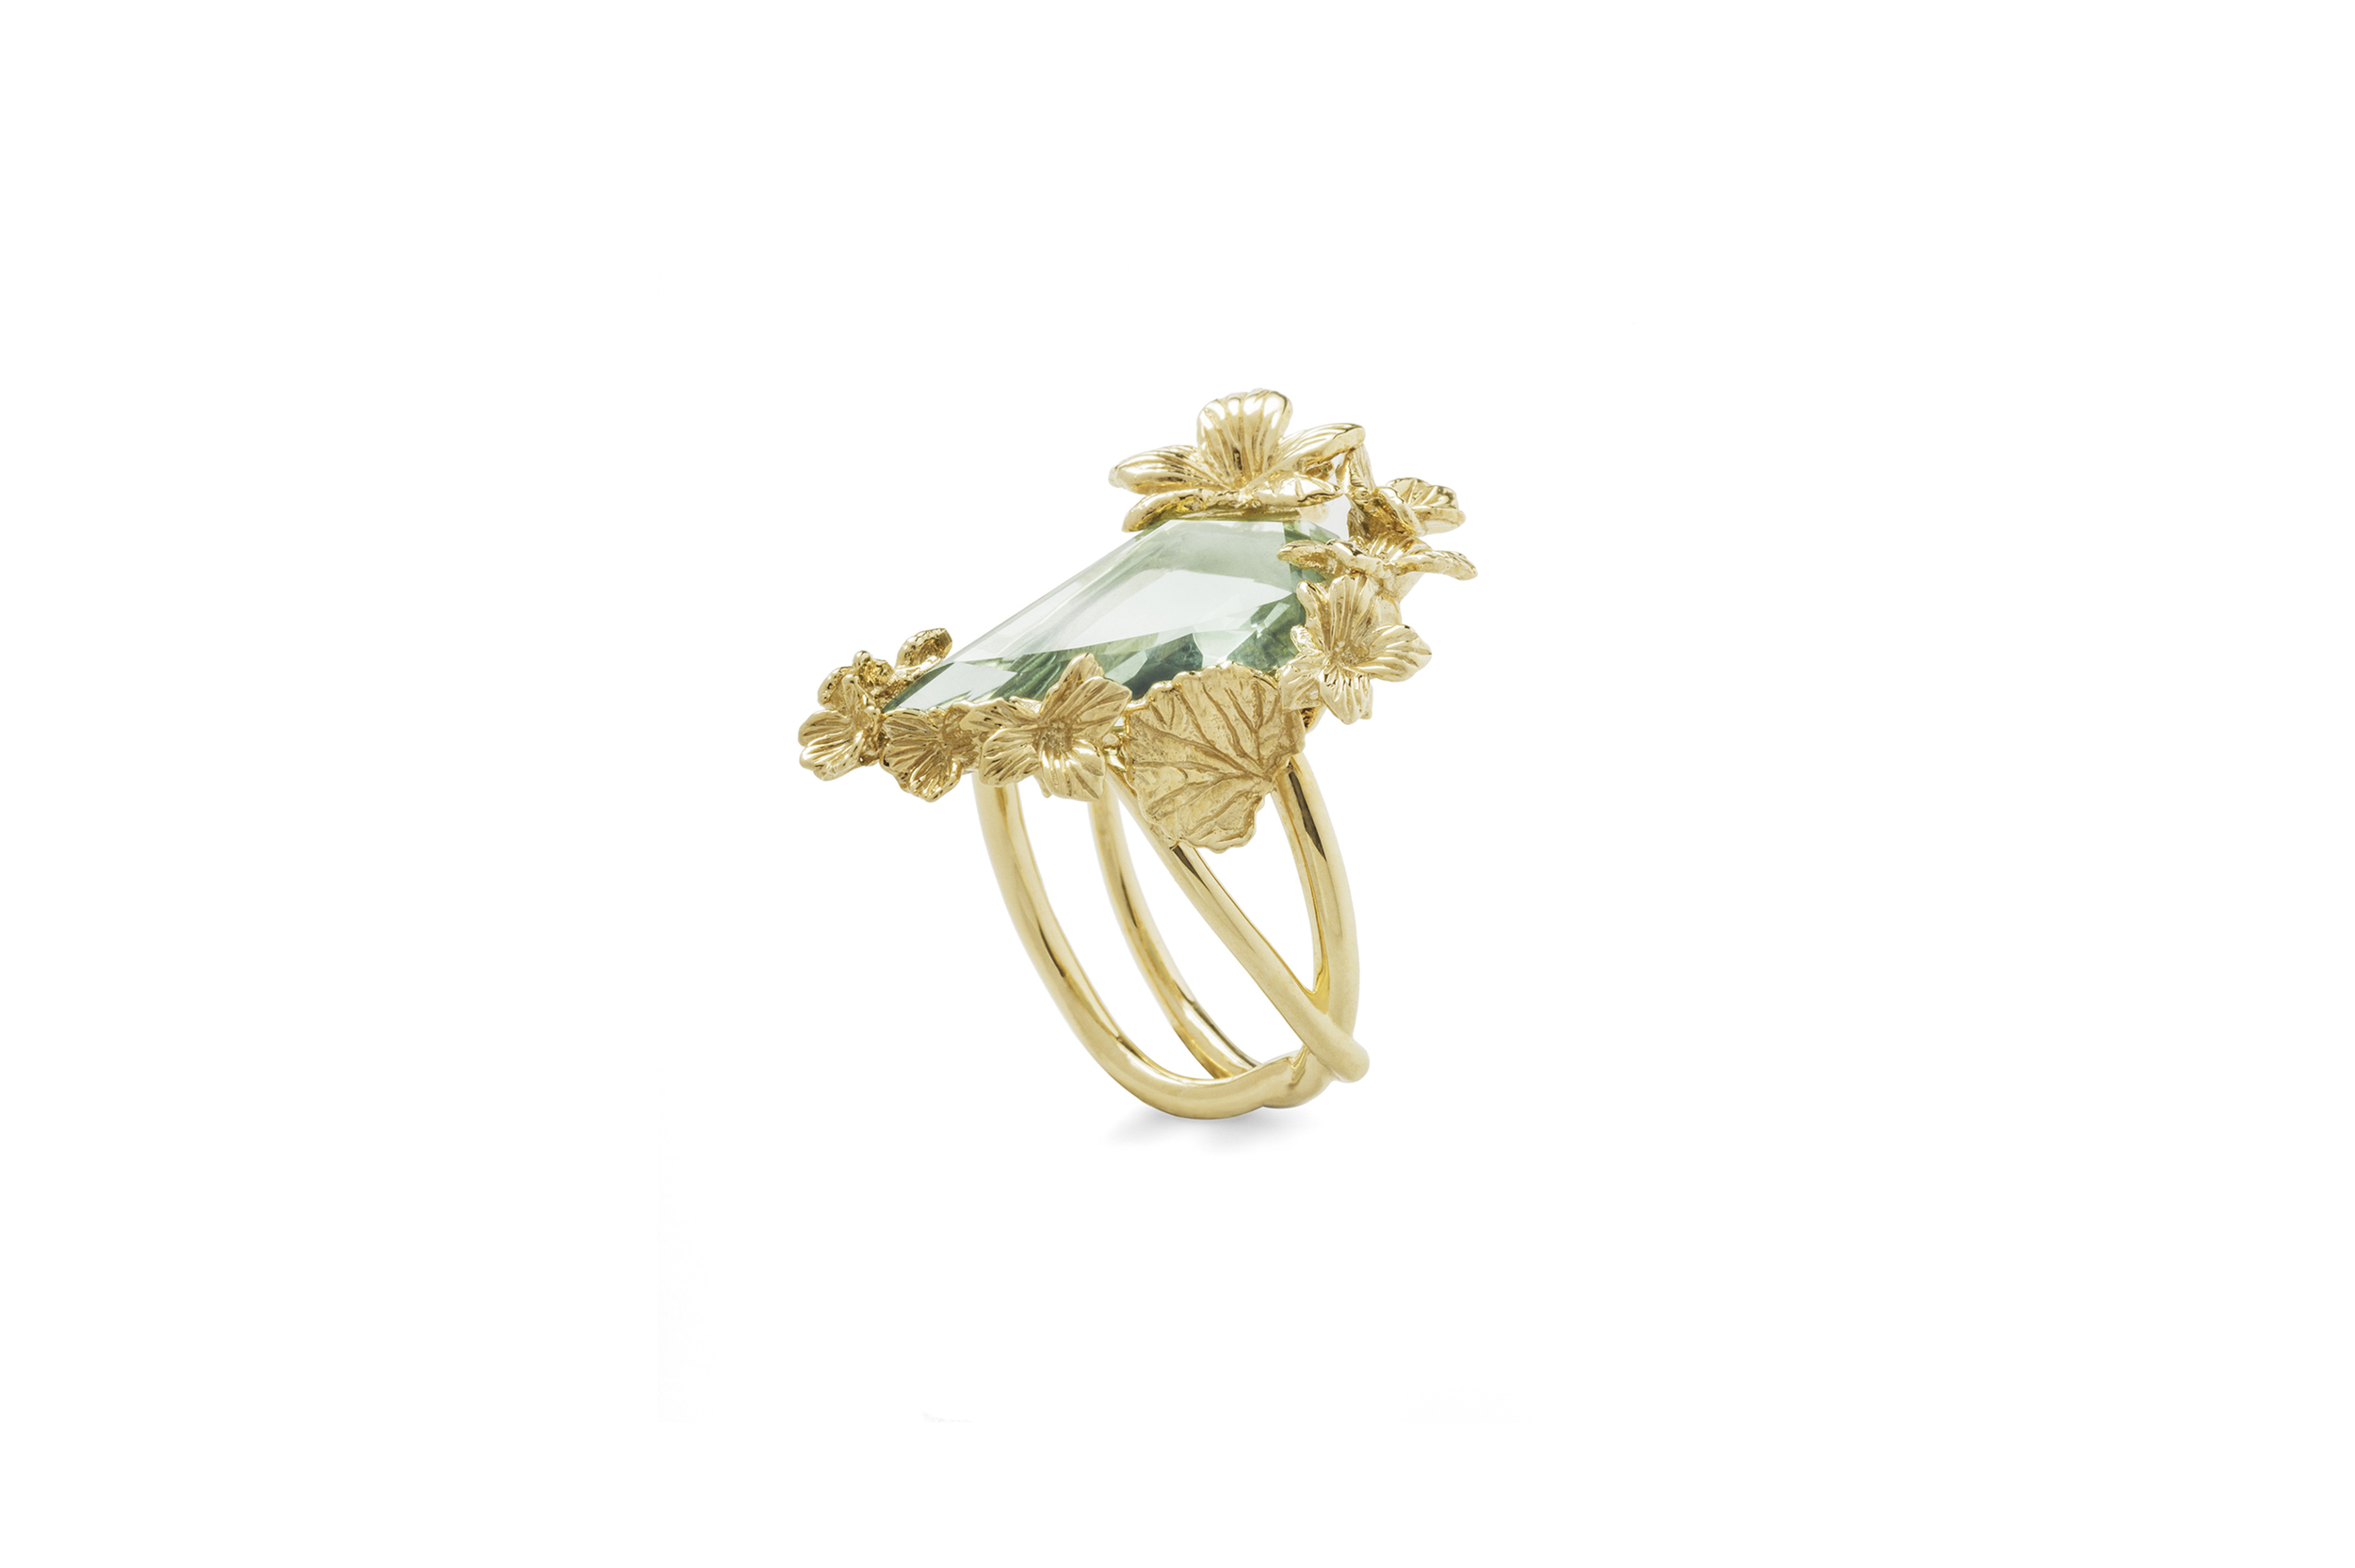 Side view of the  Jordan Askill  18k yellow gold Viola Canadensis twisted shank ring with bespoke faceted green amethyst.